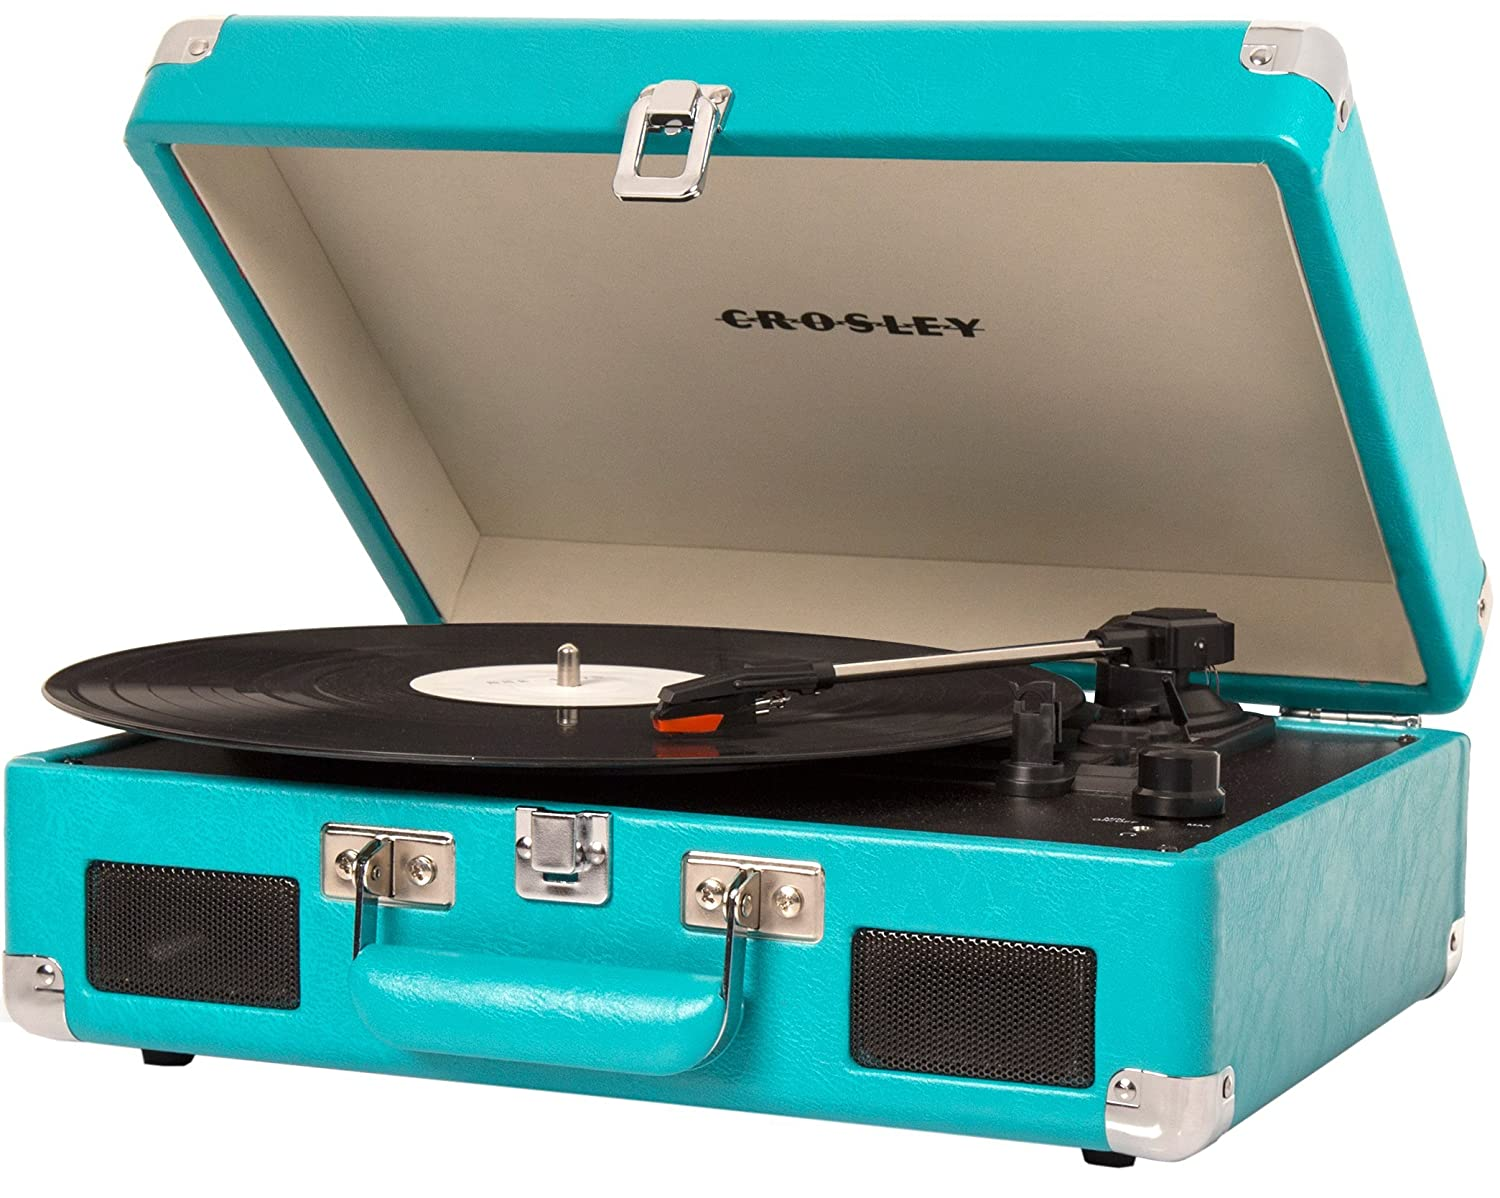 Genial Amazon.com: Crosley CR8005C TU Cruiser II Portable Battery Powered 3 Speed  Turntable, Turquoise: Electronics